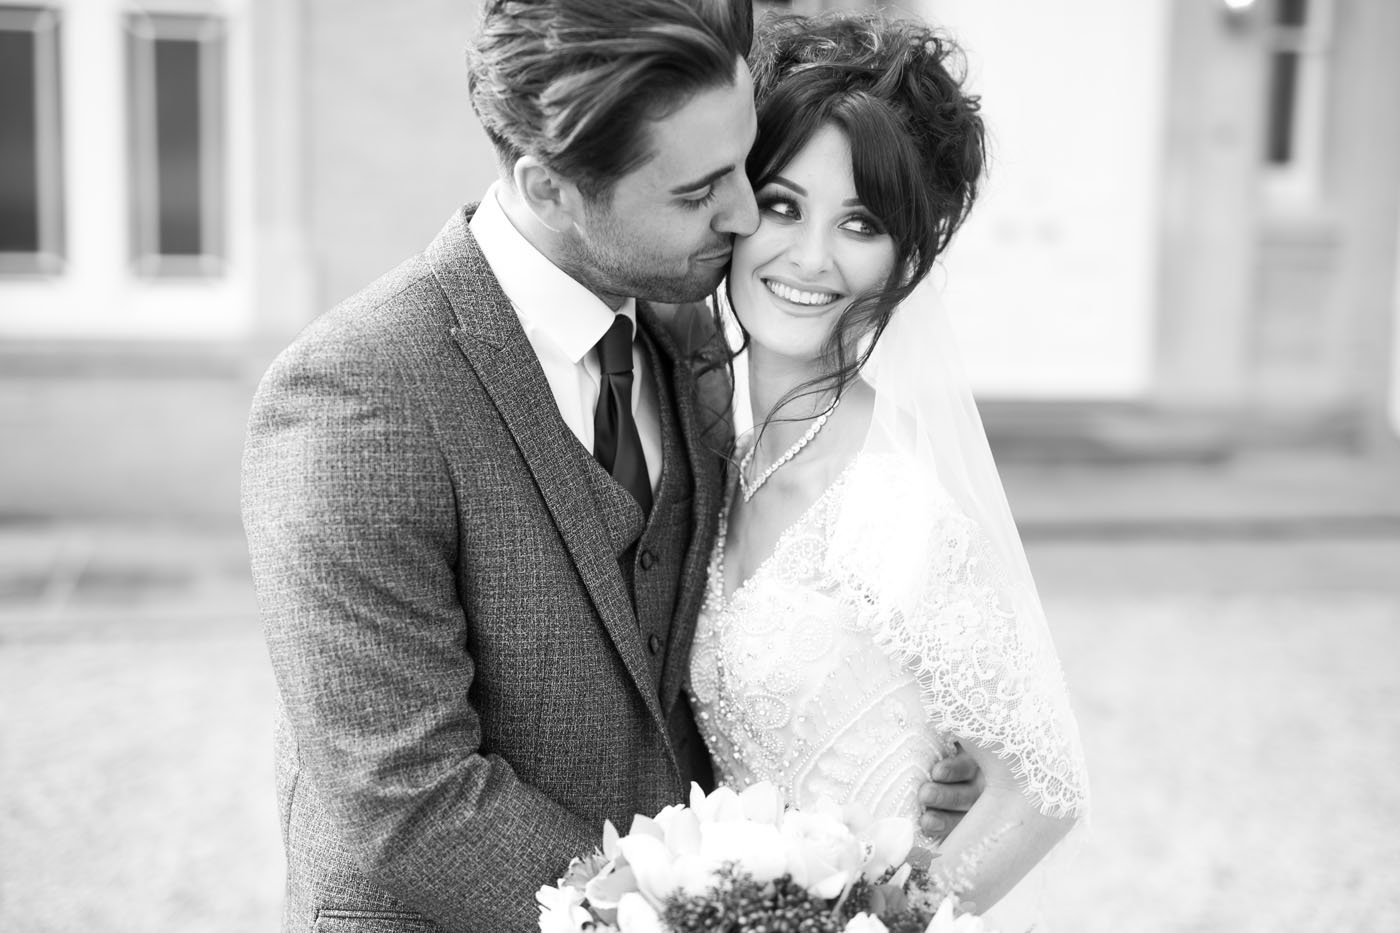 A groom kisses his brie on the cheek at St Tewcrics